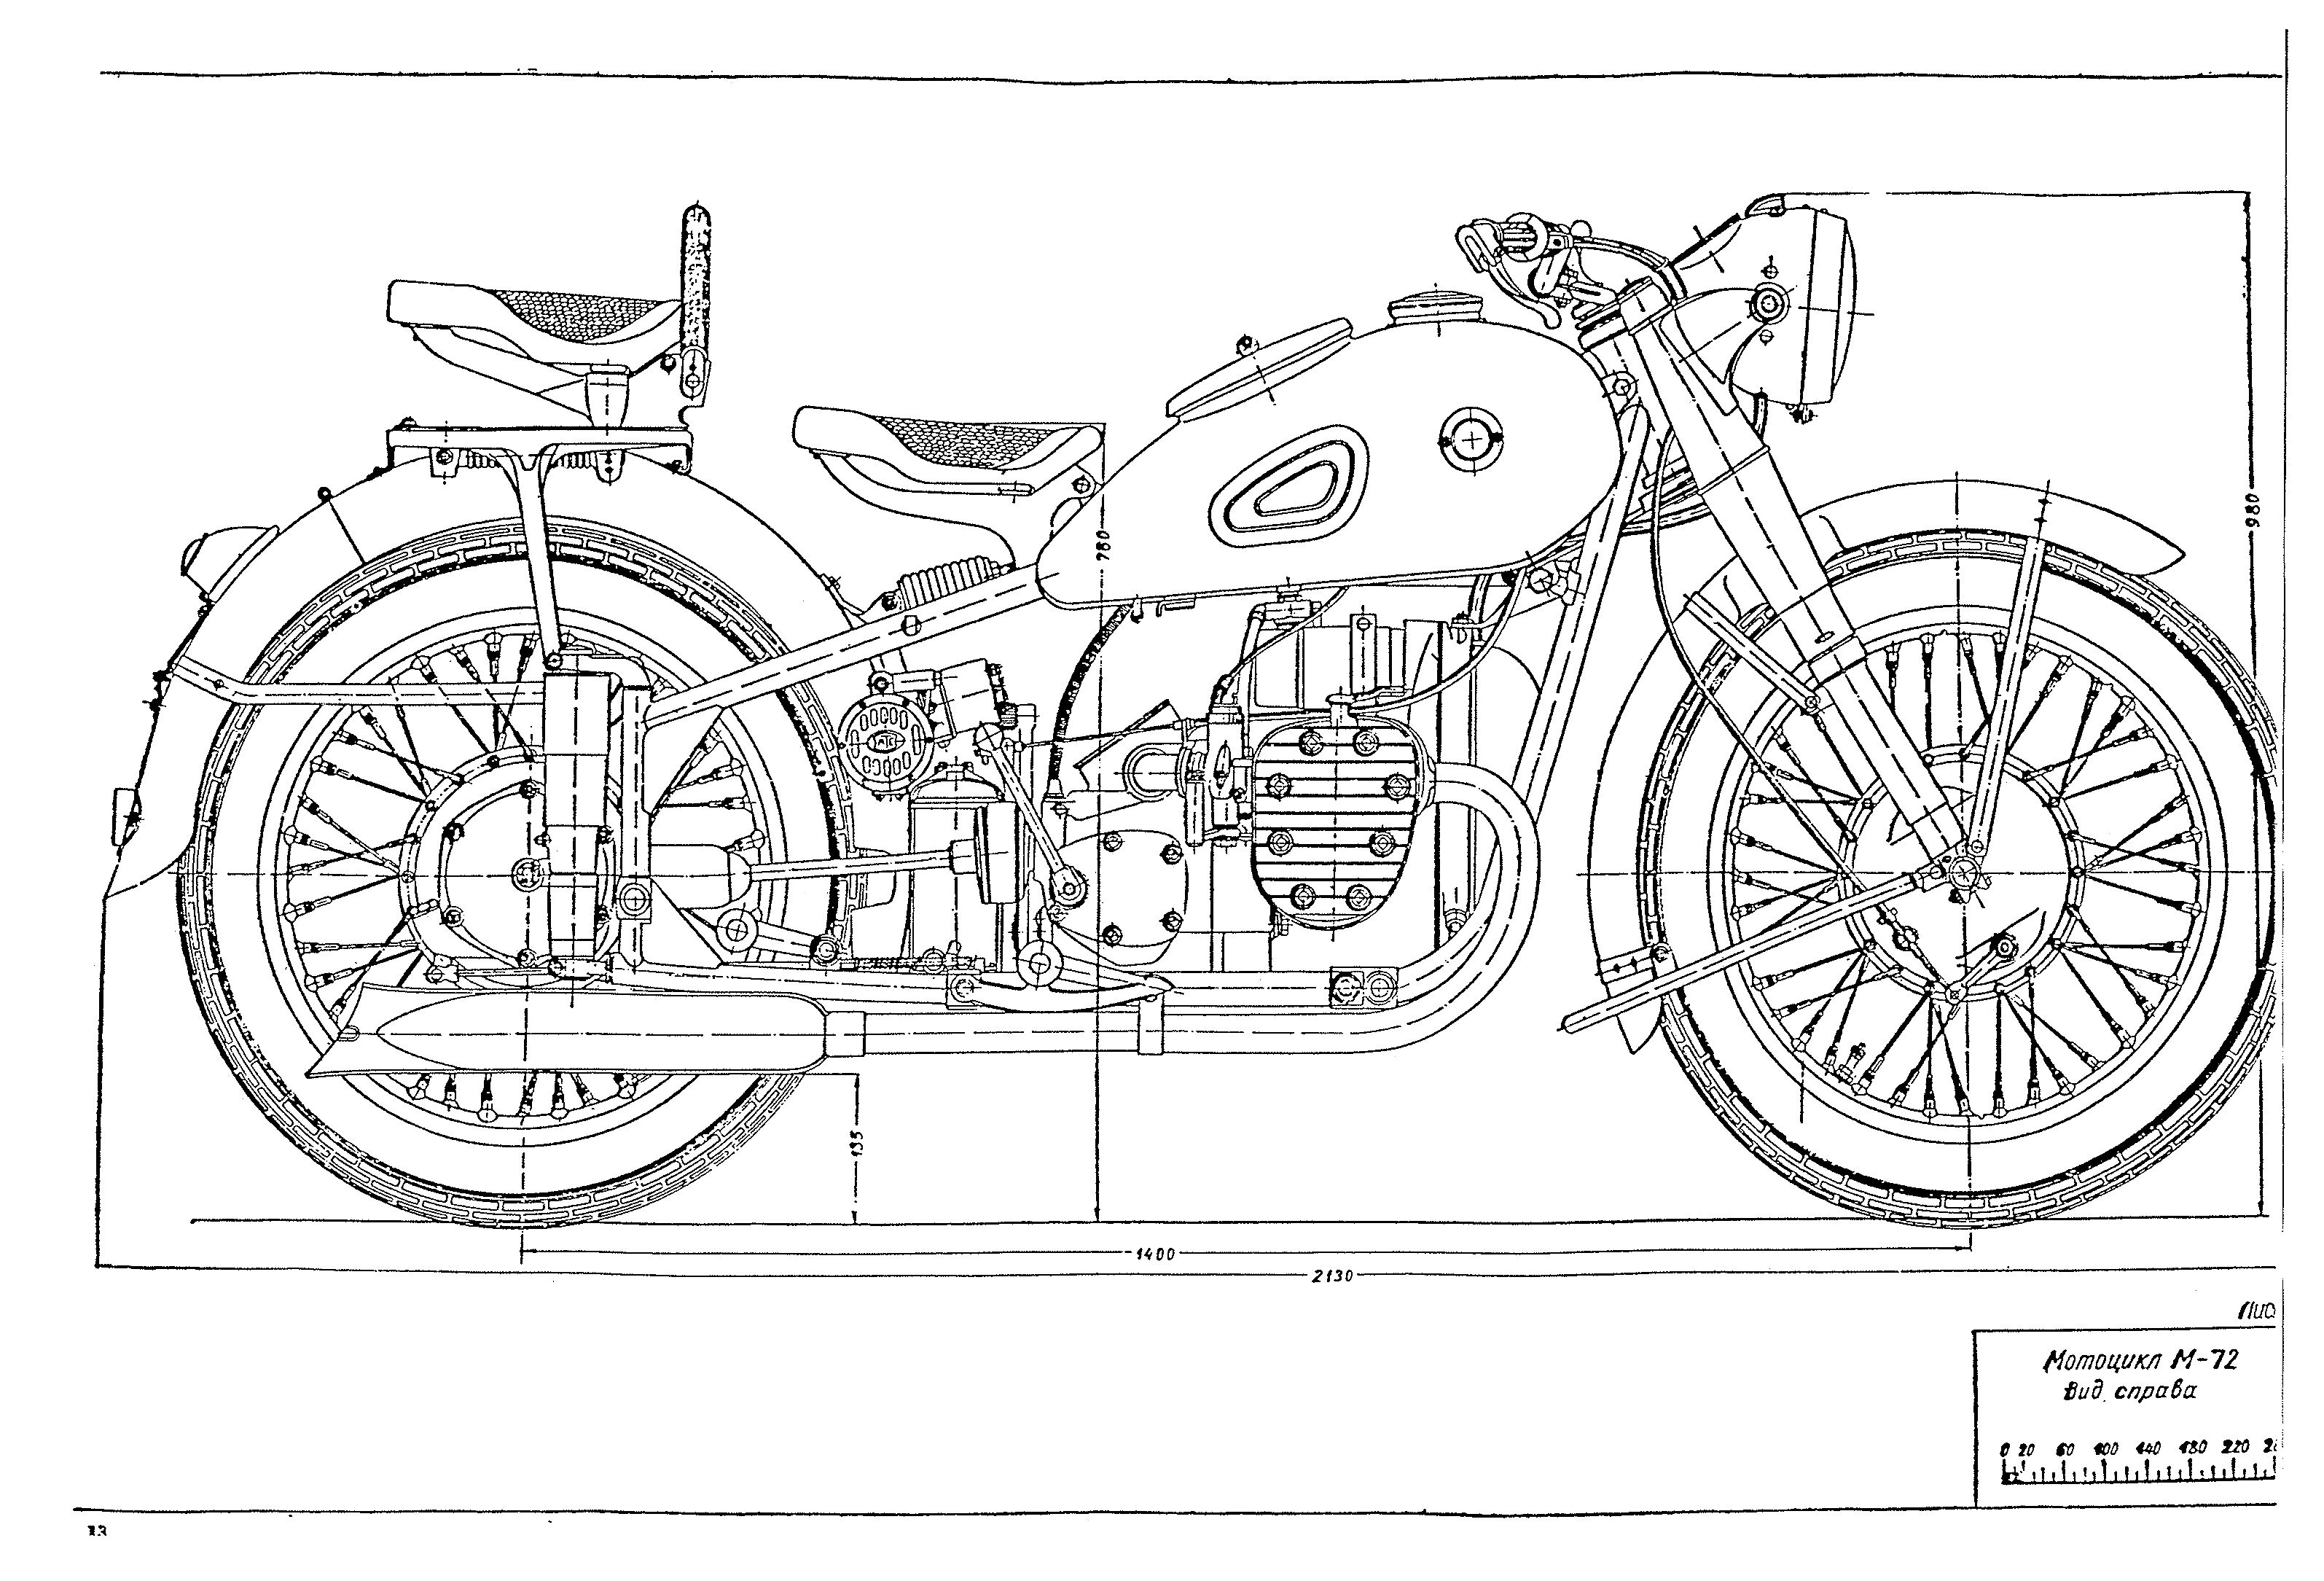 medium resolution of motorcycle blueprints google search